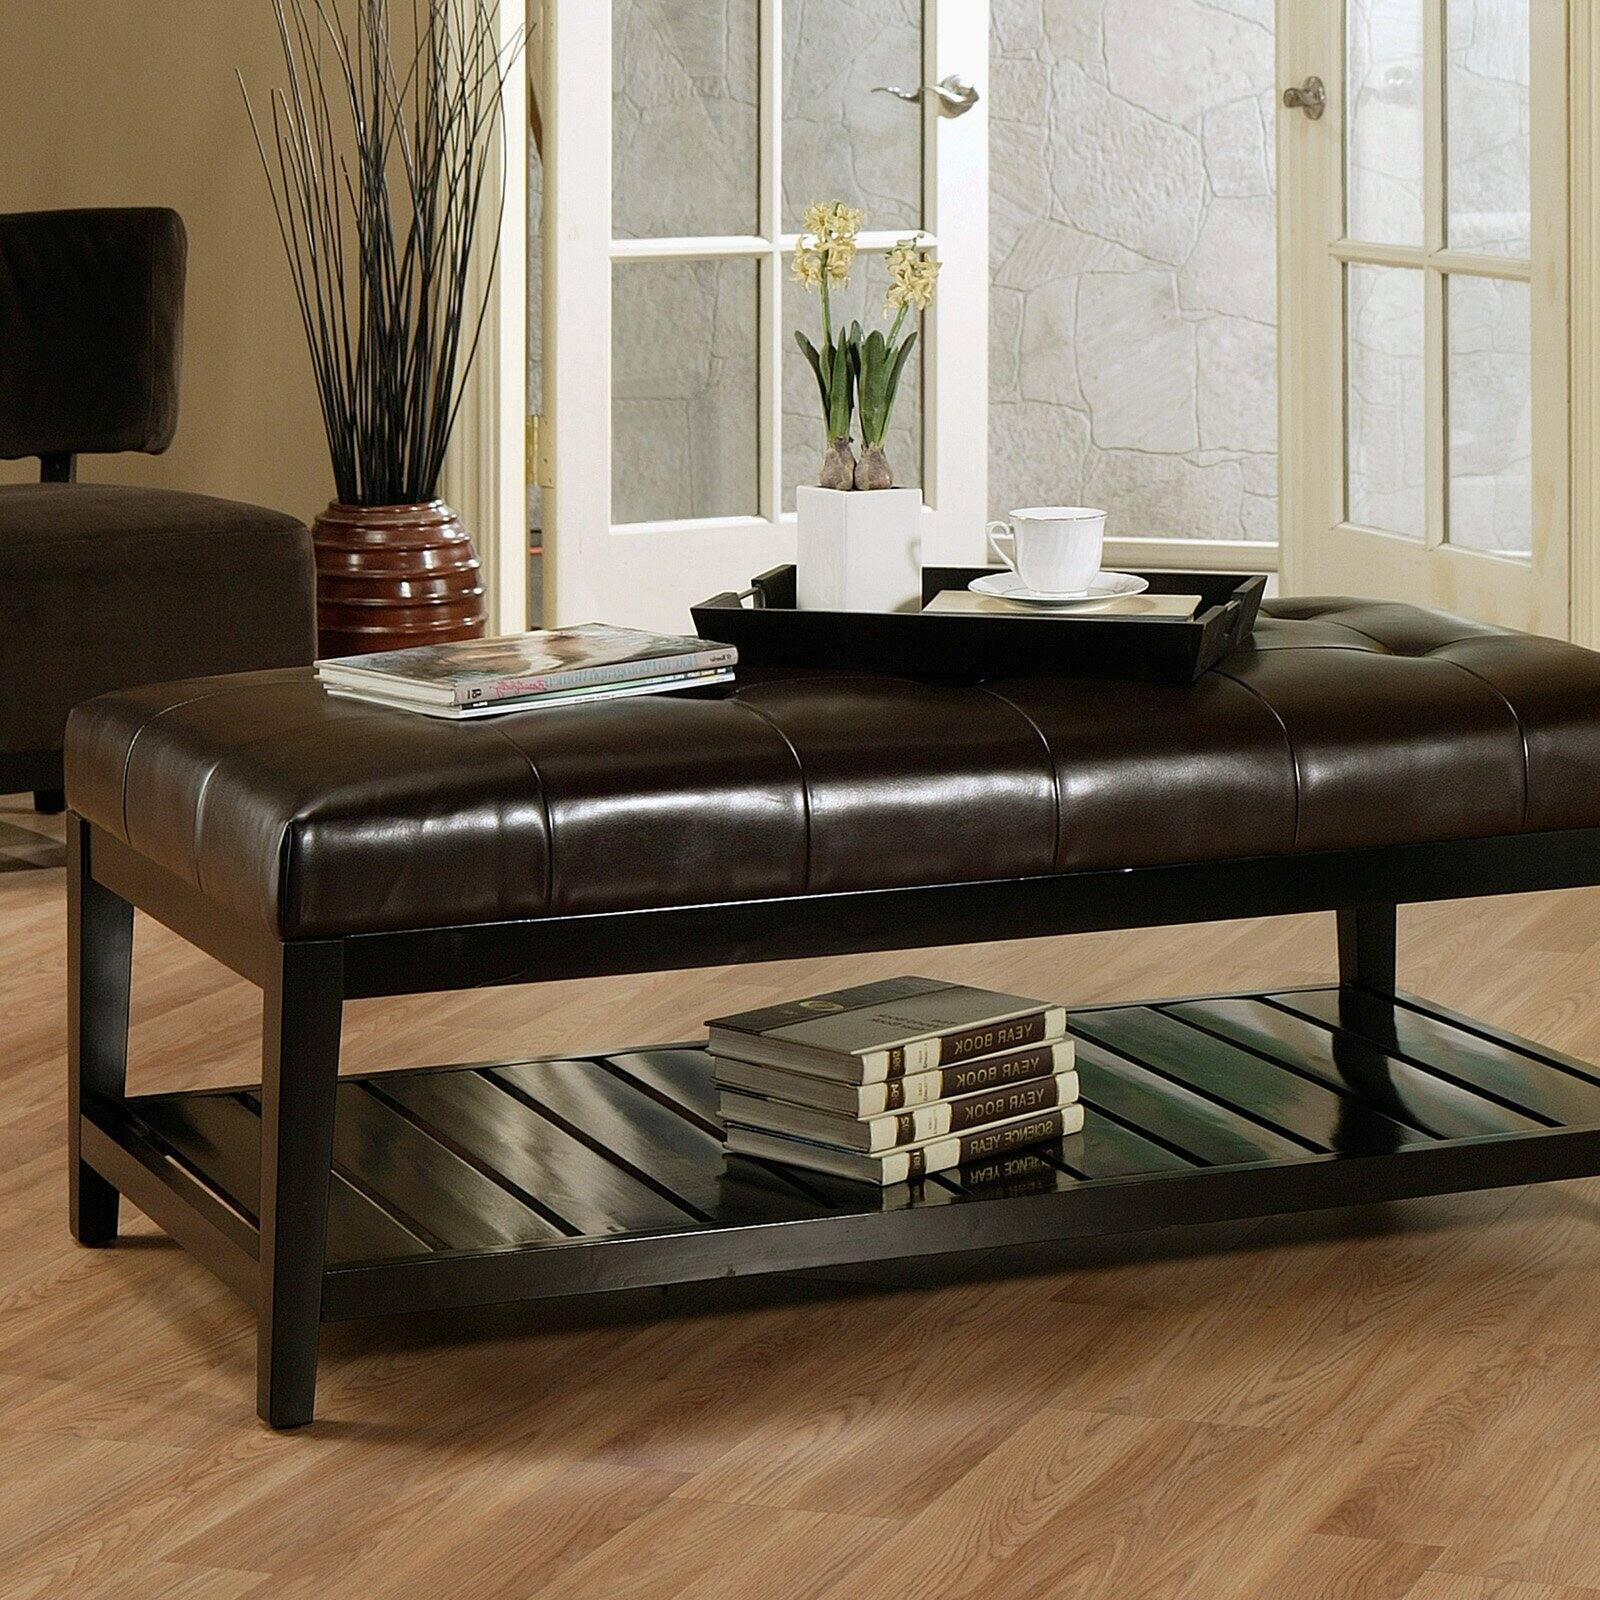 winslow bicast tufted leather coffee table ottoman walmart com